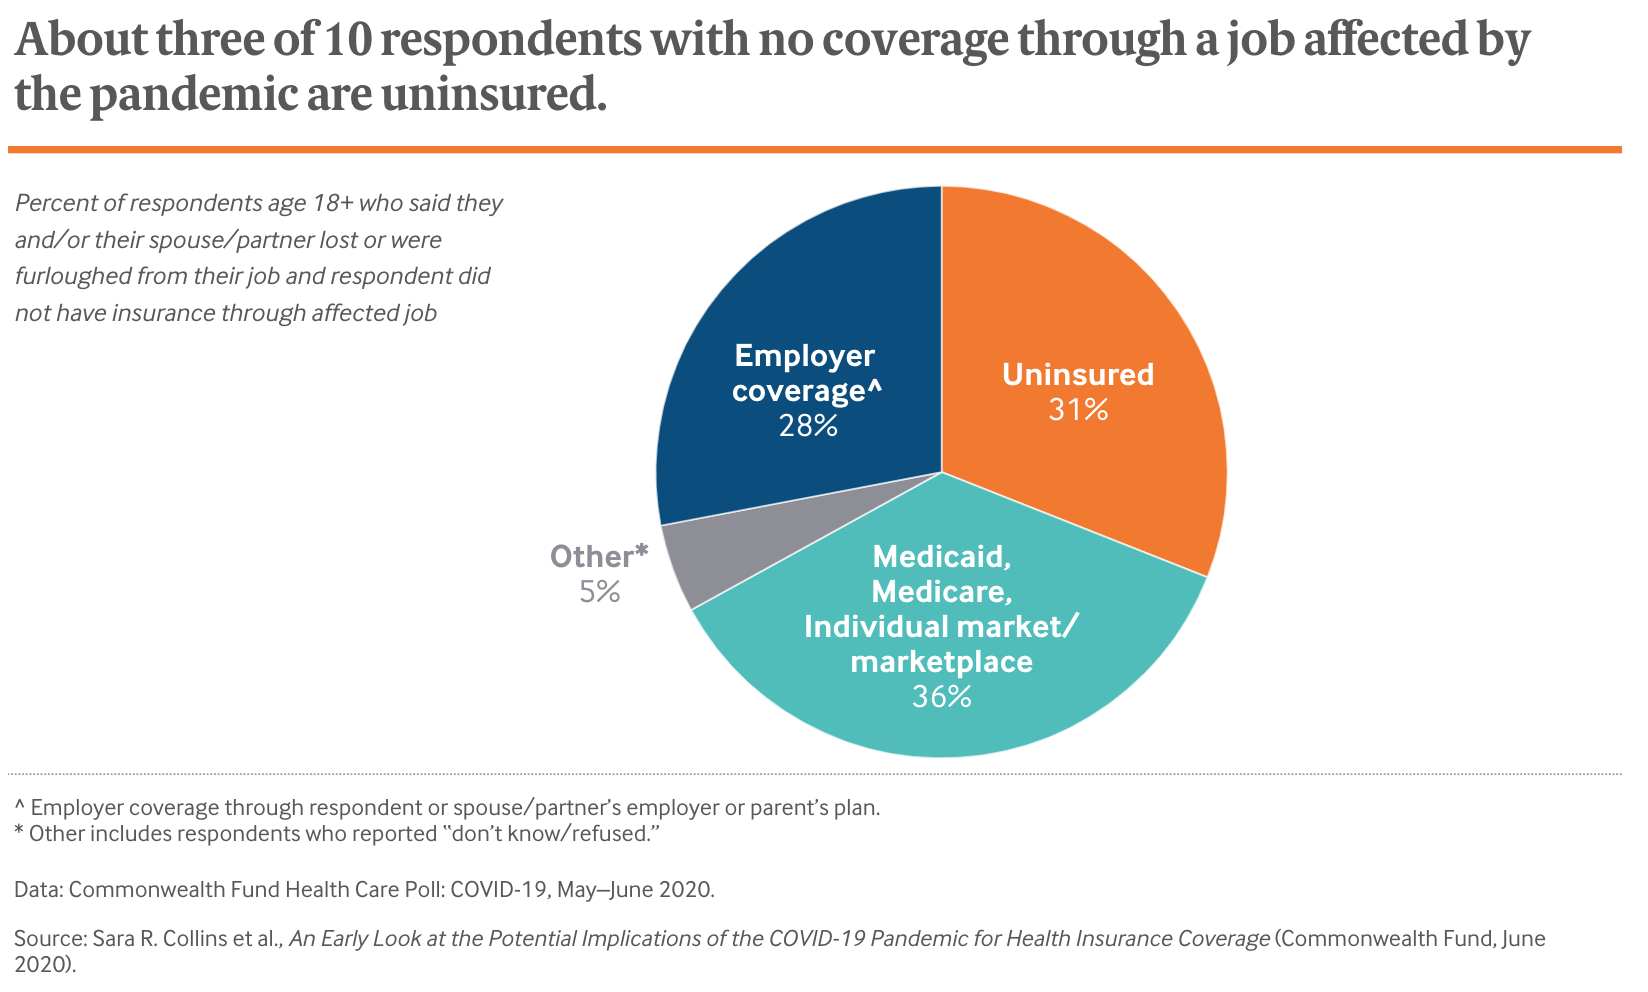 About three of 10 respondents with no coverage through a job affected by the pandemic are uninsured.